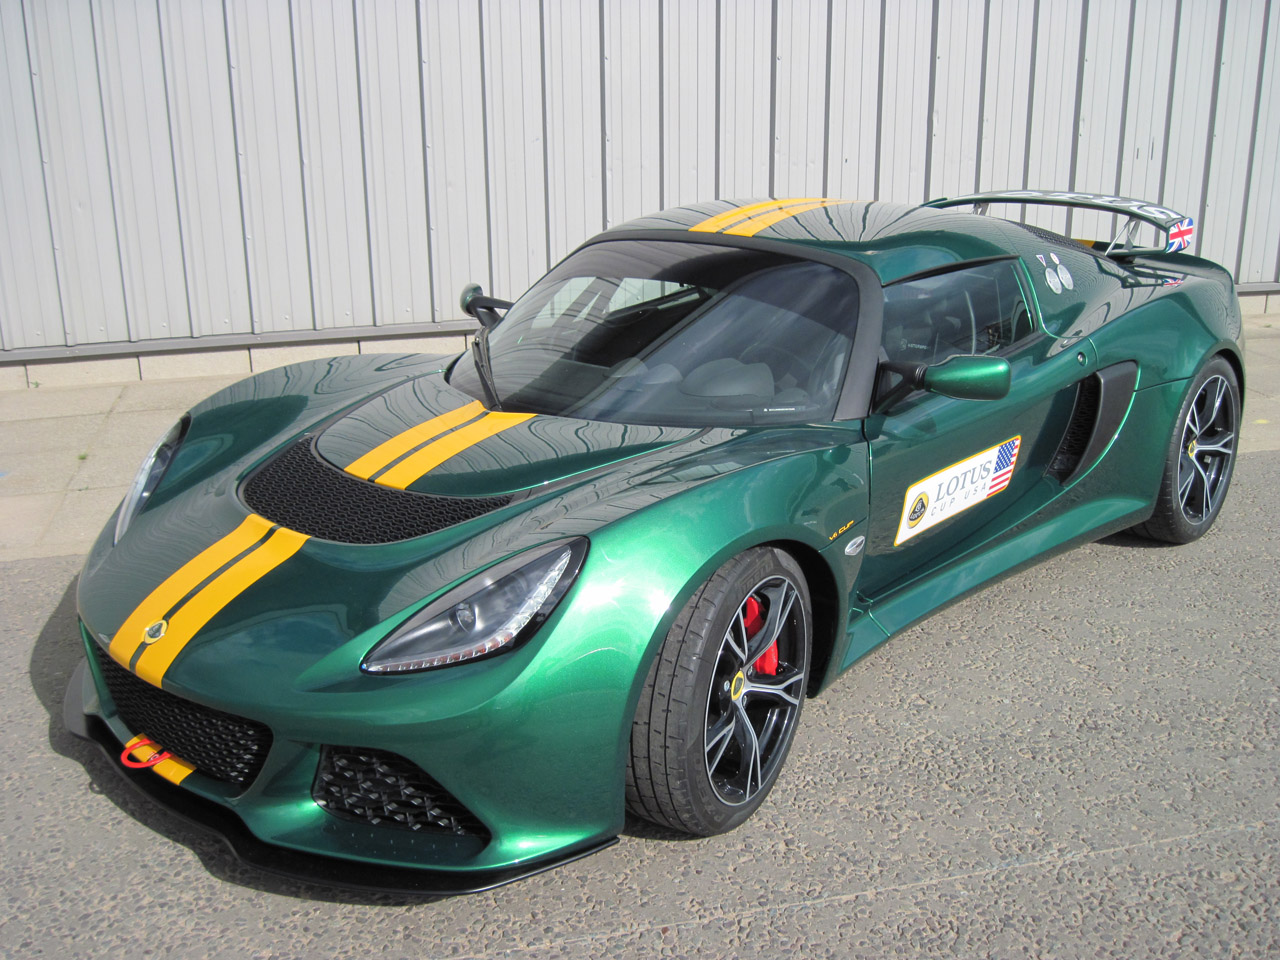 lotus exige v6 cup racer officially launched. Black Bedroom Furniture Sets. Home Design Ideas